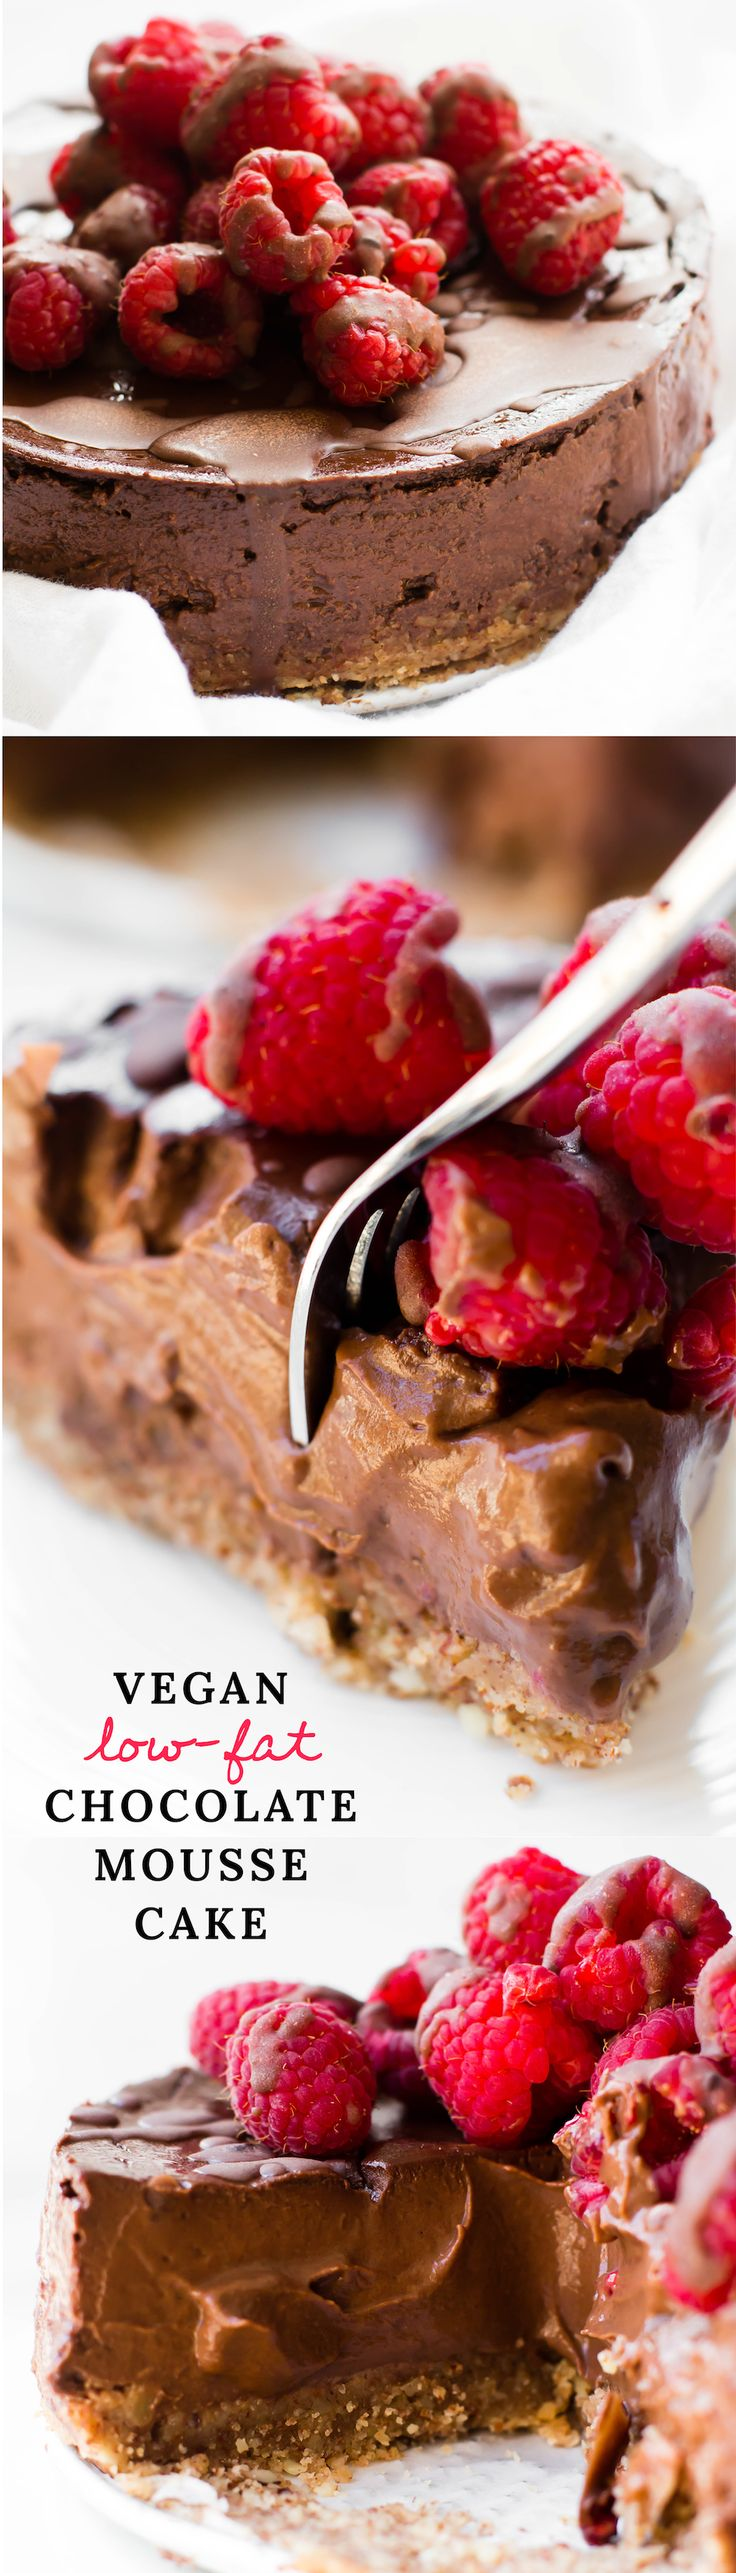 This insanely decadent Chocolate Mousse Cake may taste like a rich fudgy indulgence but it's made from just a few healthy whole-food ingredients right in the blender!